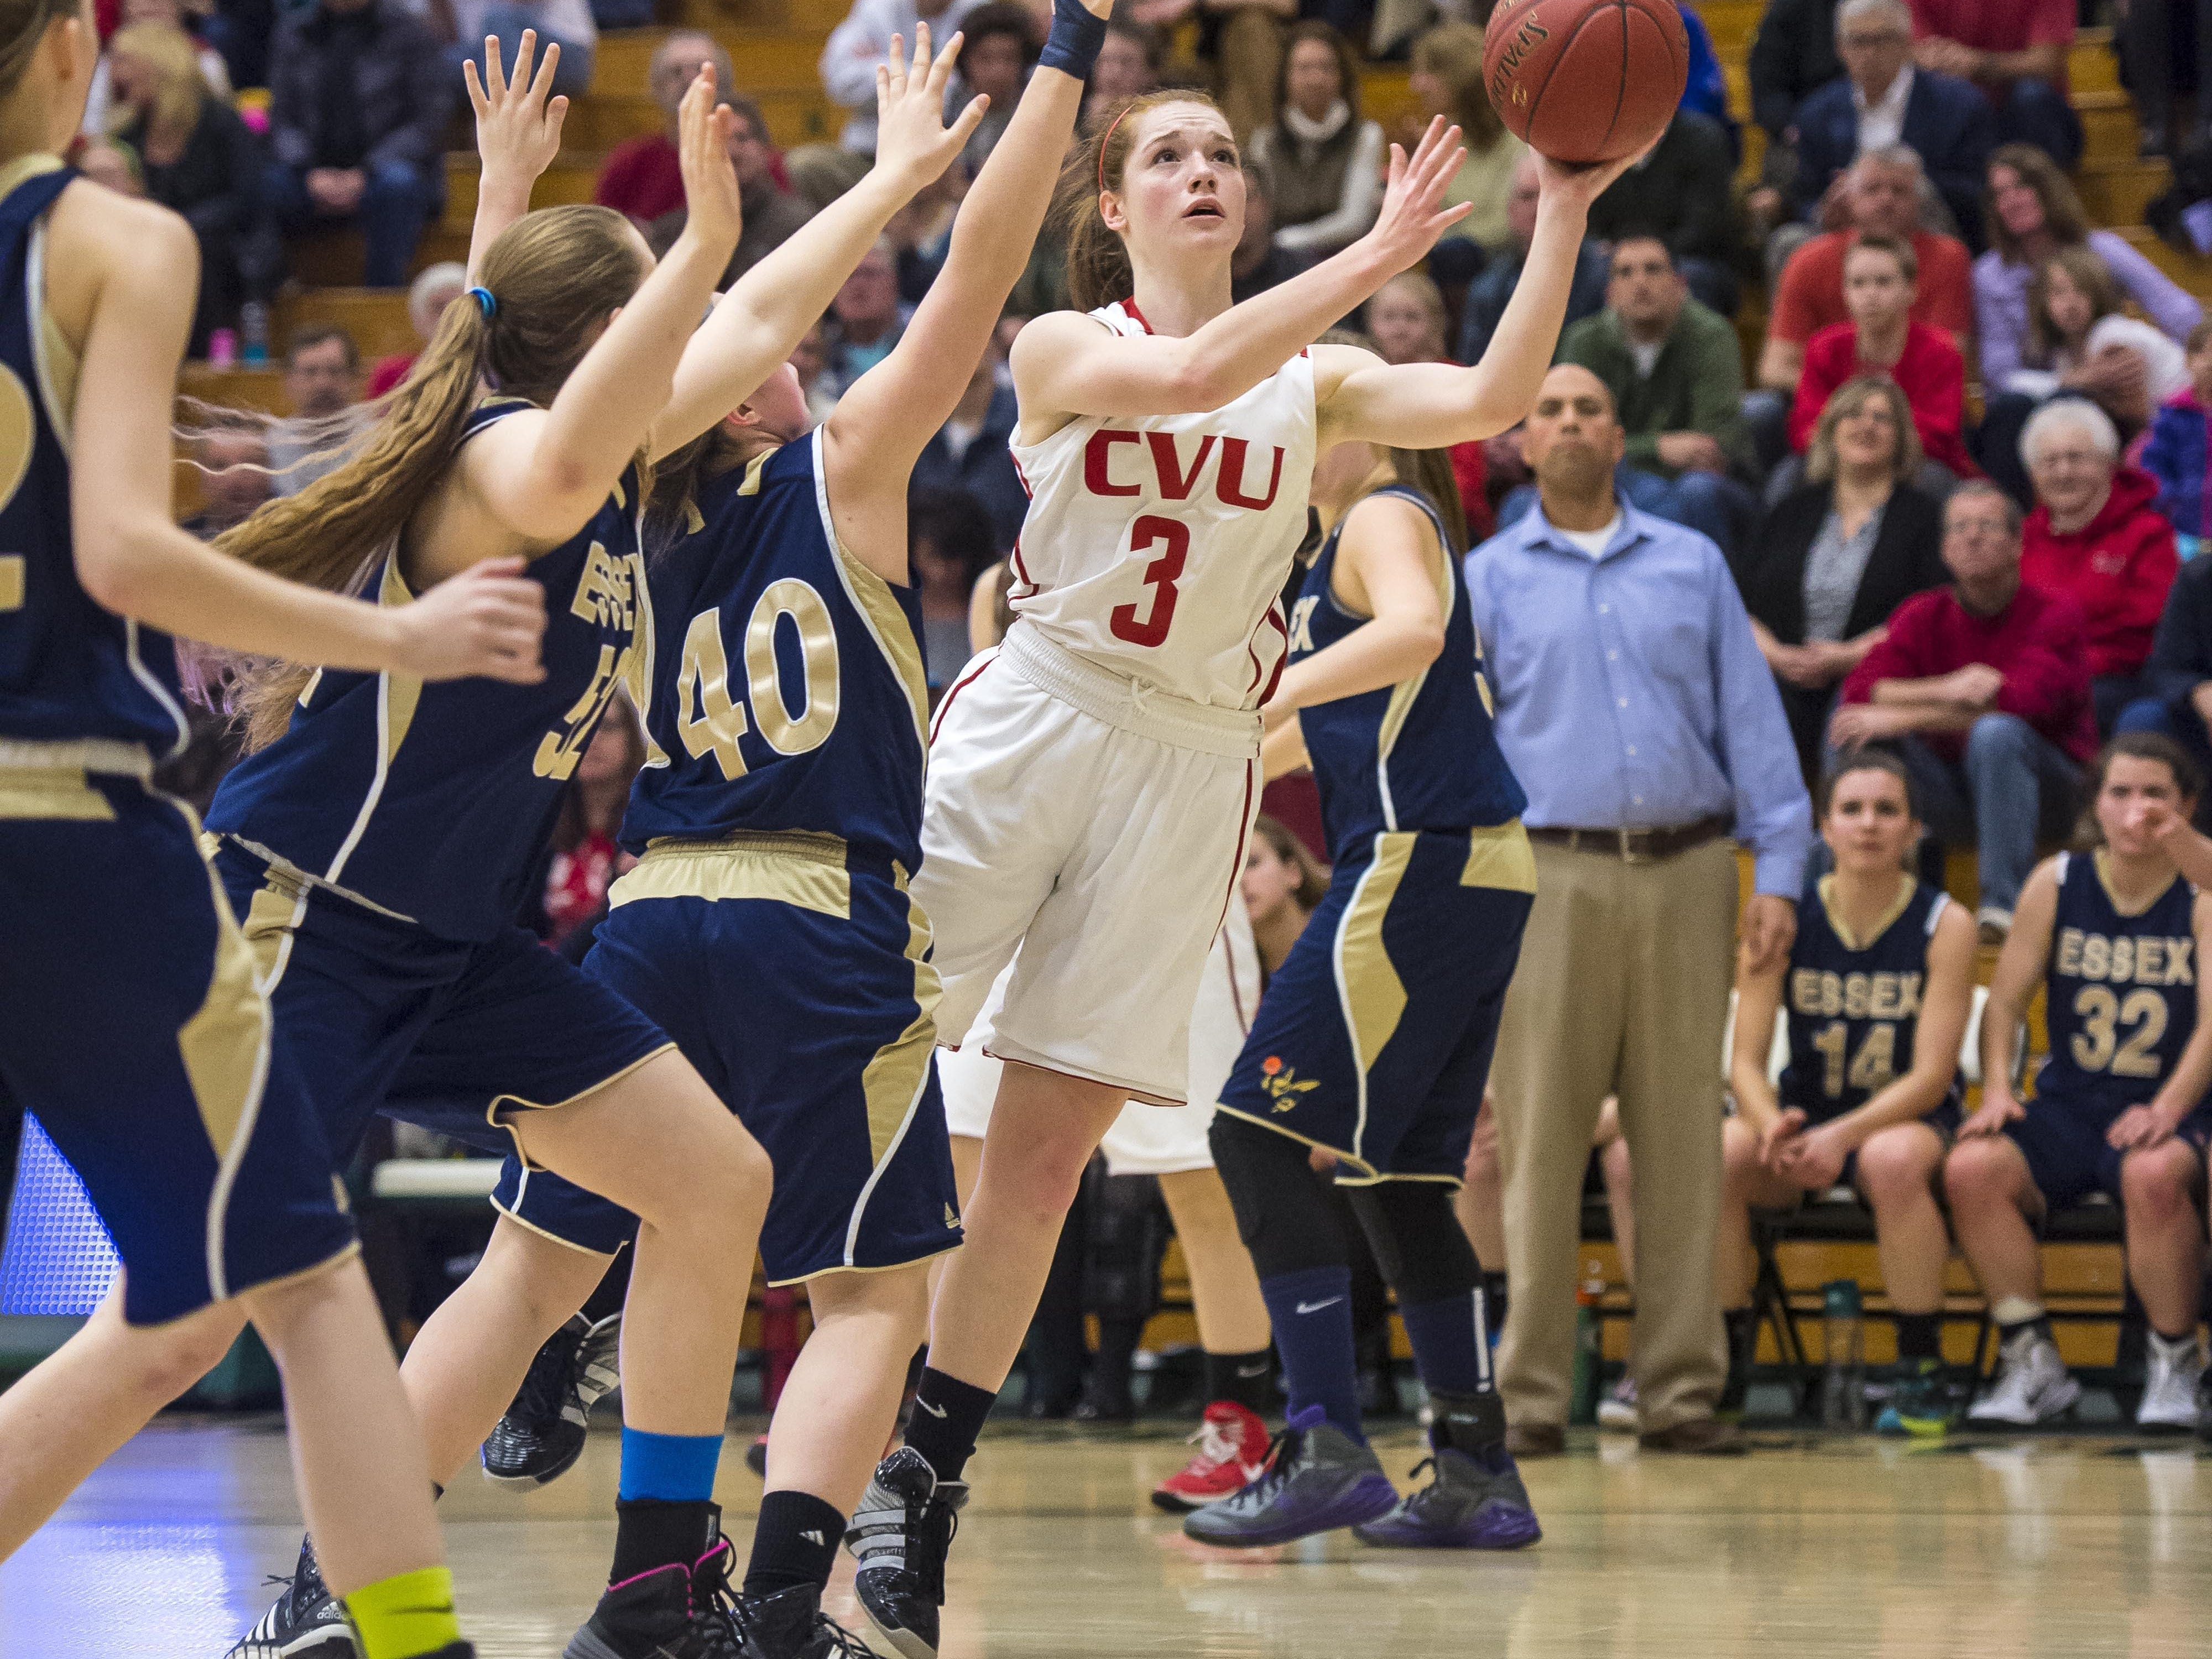 Champlain Valley's Sadie Otley, seen in action in last year's Division I title game, helped the Redhawks to a season-opening win Thursday night.